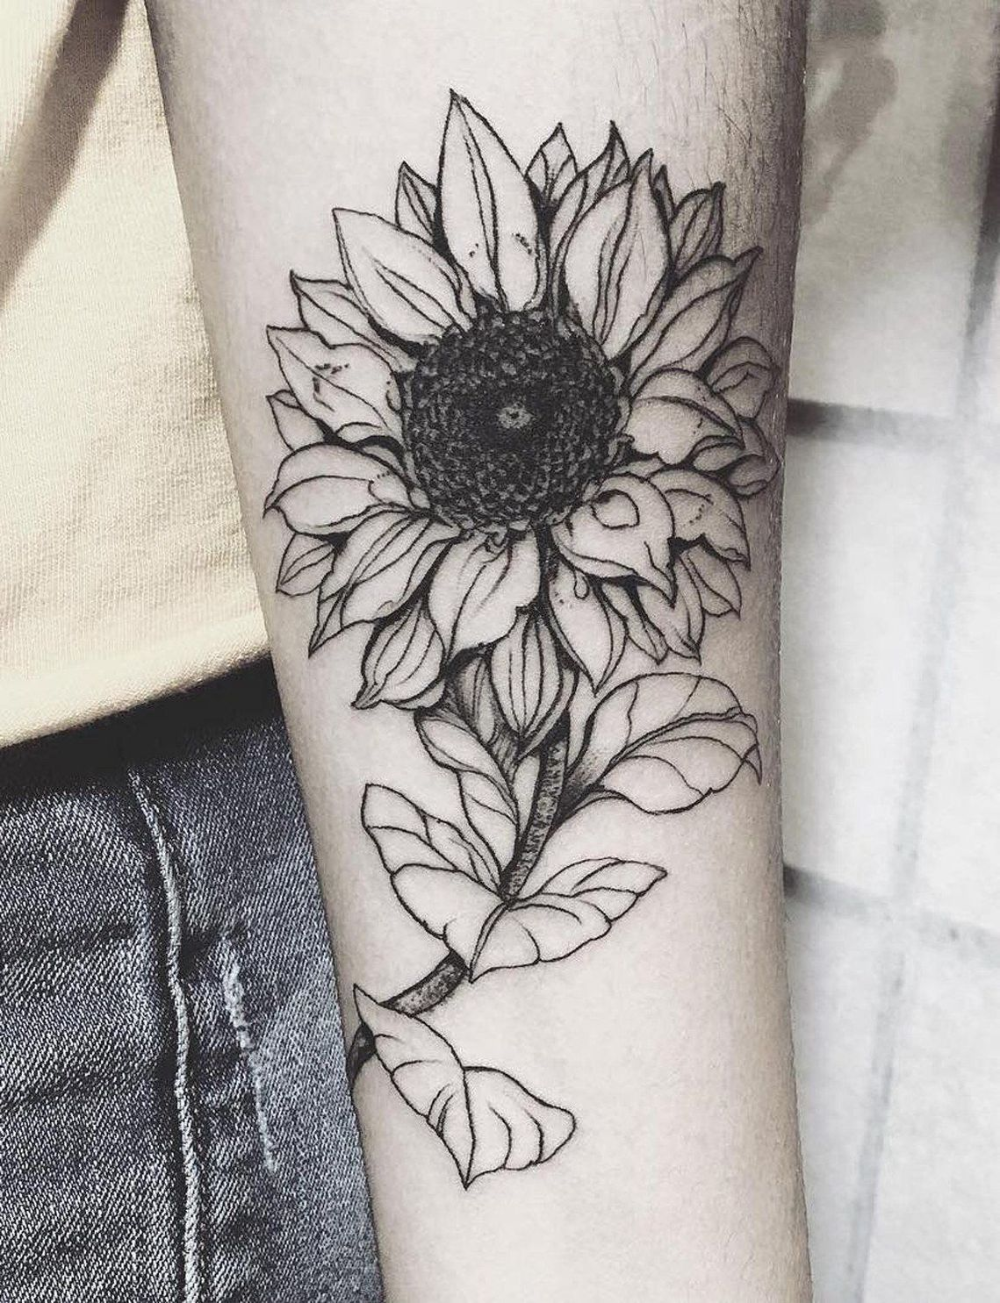 The Arm Is One Of The Most Common Places To Get A Tattoo And For Good Reason The Size And The Shape Of Th In 2020 Sunflower Tattoos Vintage Flower